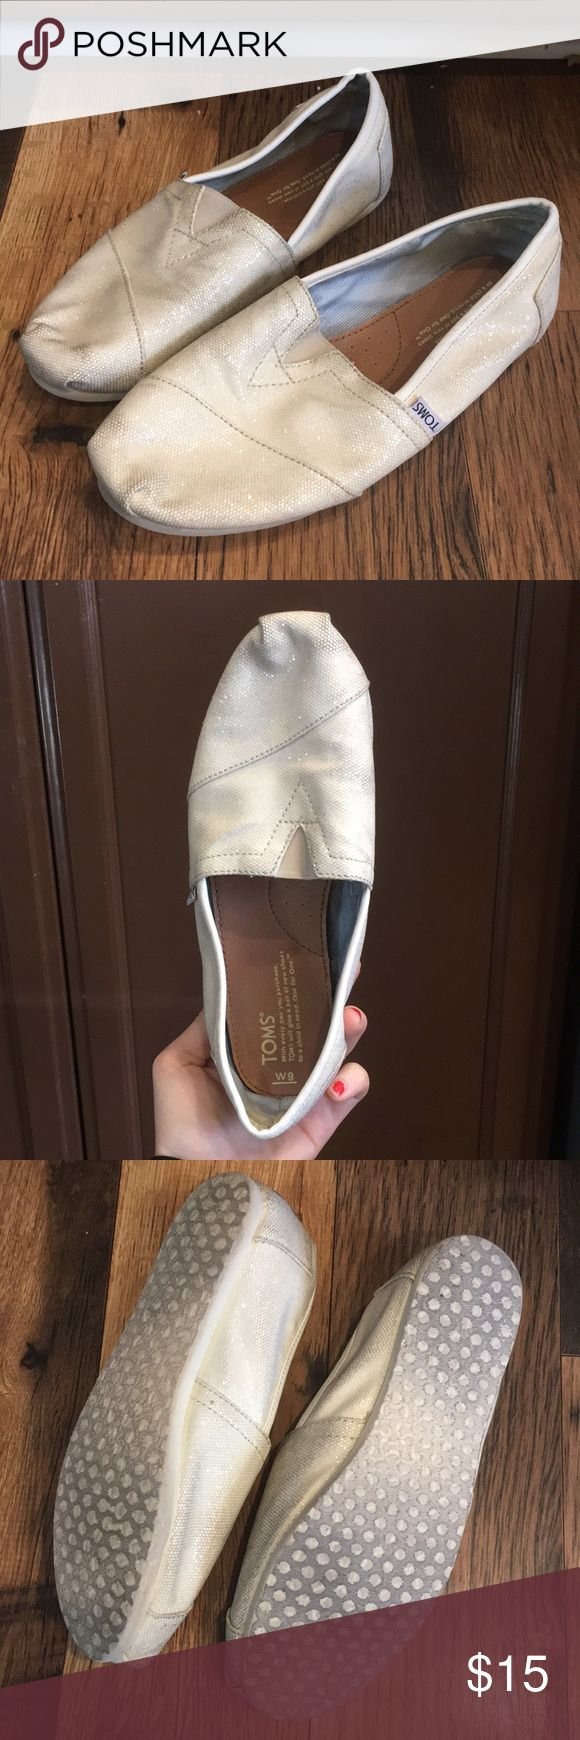 Cream sparkle toms Cream/ off white sparkle toms. Size 9. Used condition but no signs of wear or flaws, they Just need to be cleaned. Toms Shoes Flats & Loafers